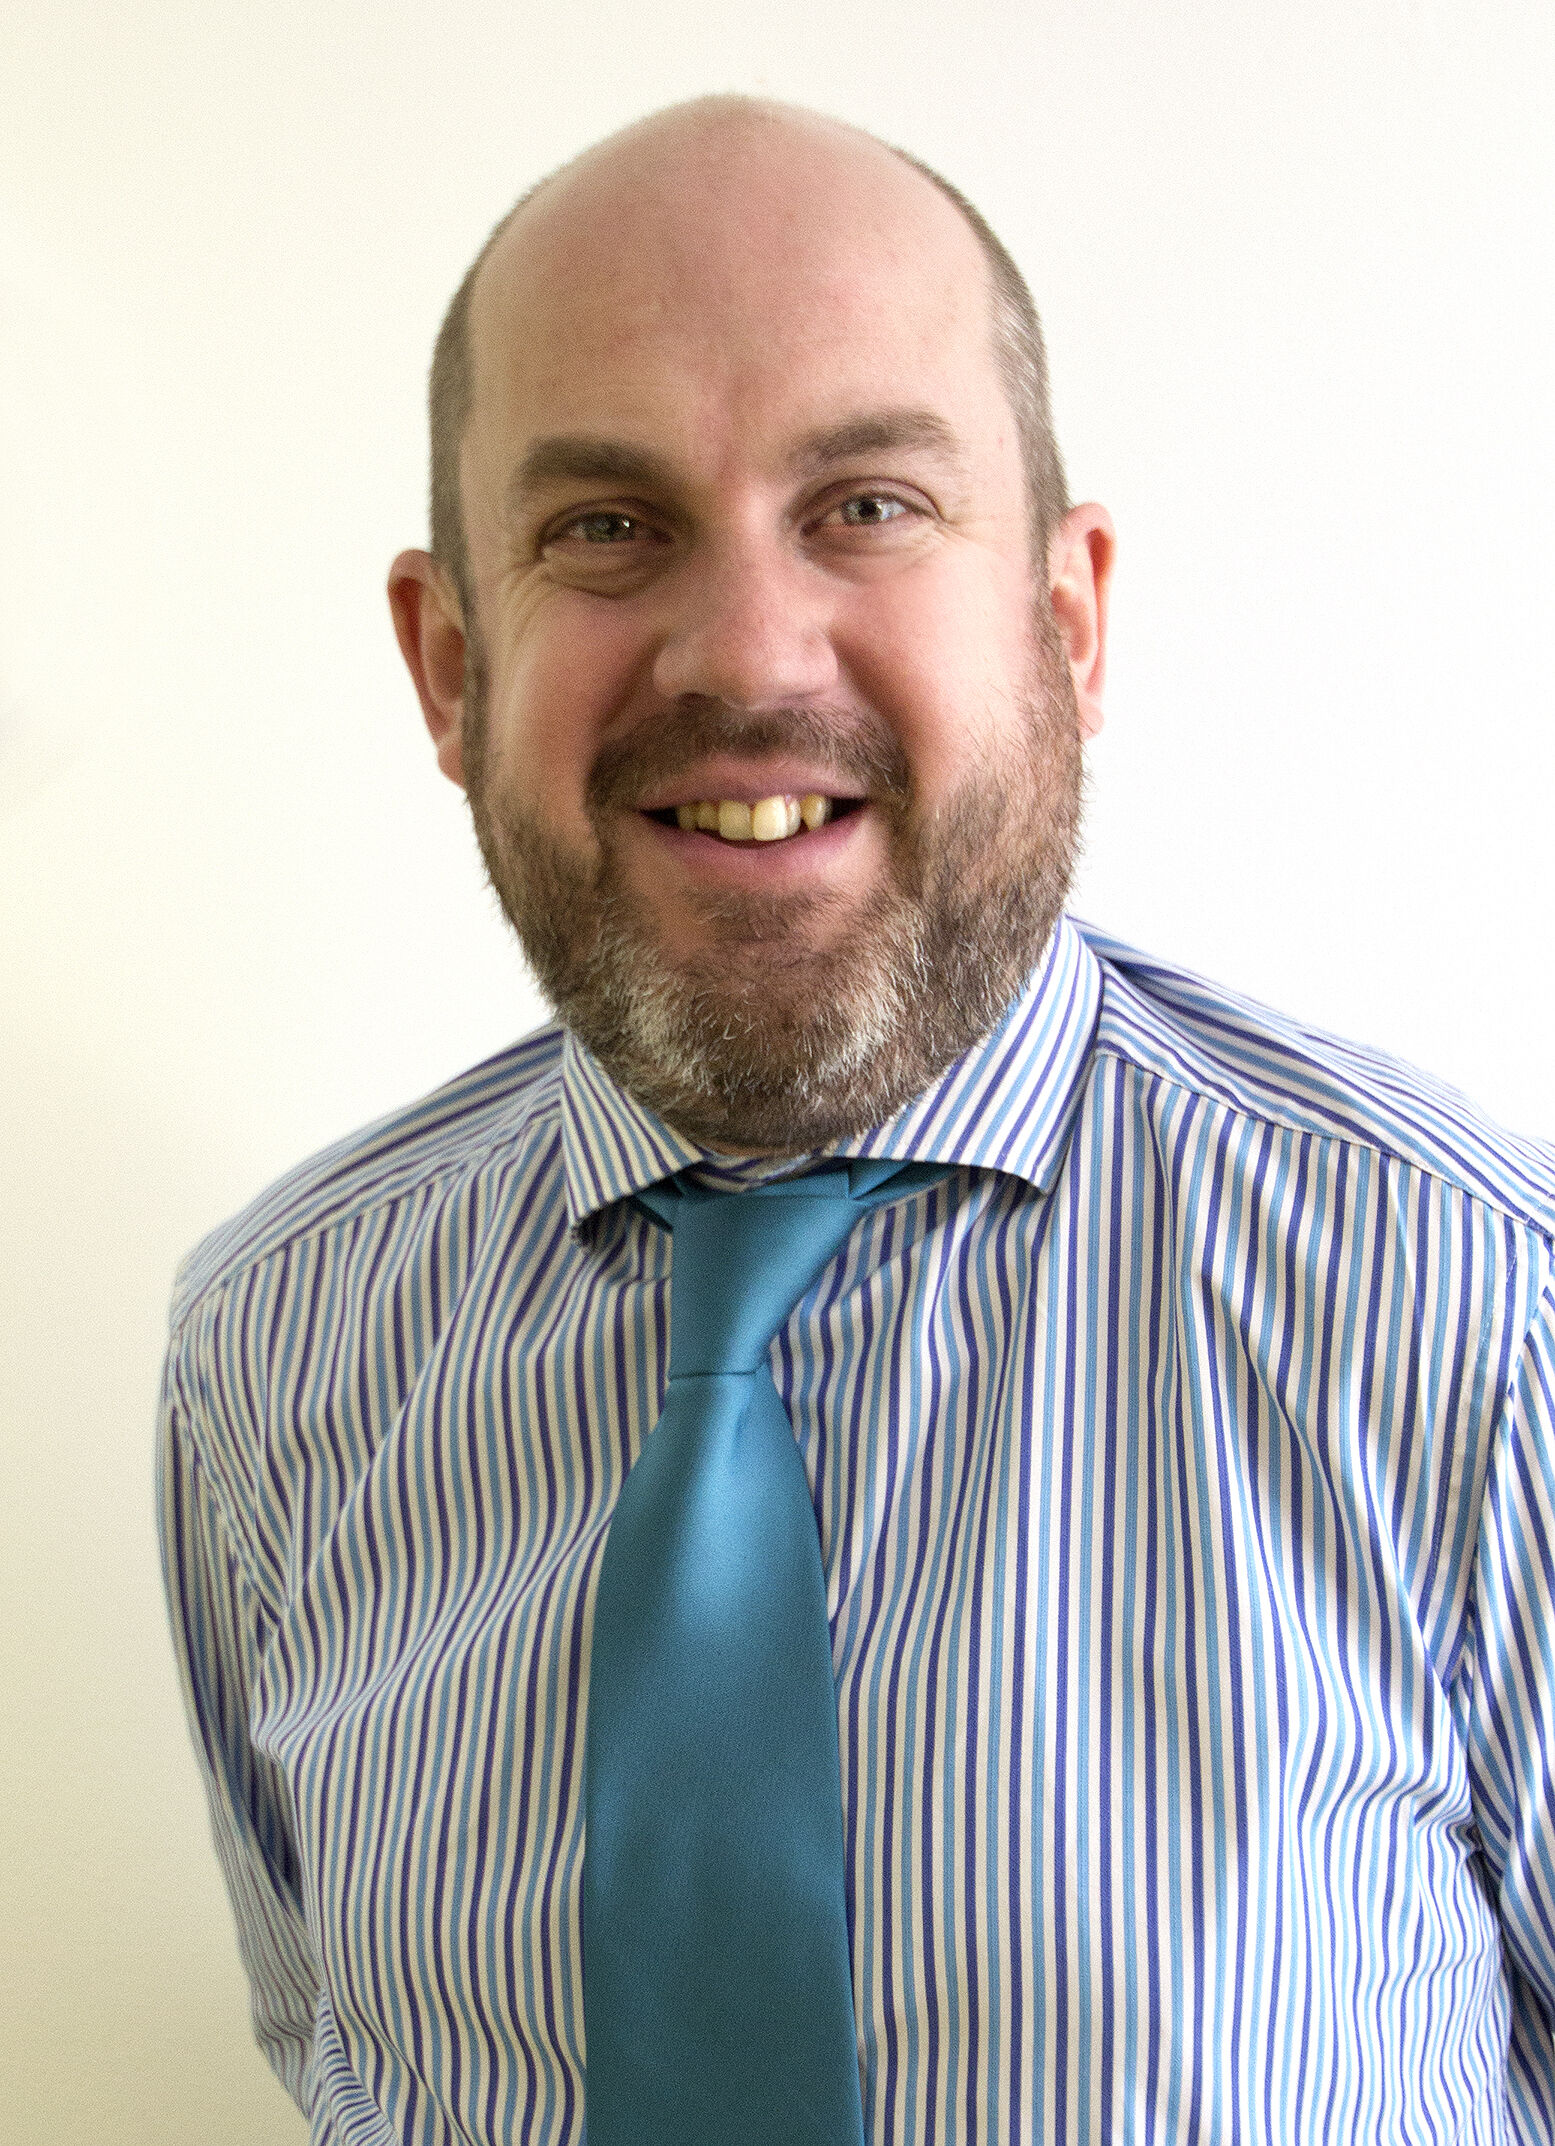 Ben Dreher PAPPA Chairman and Director at Lawson Estat Agents, Plymouth